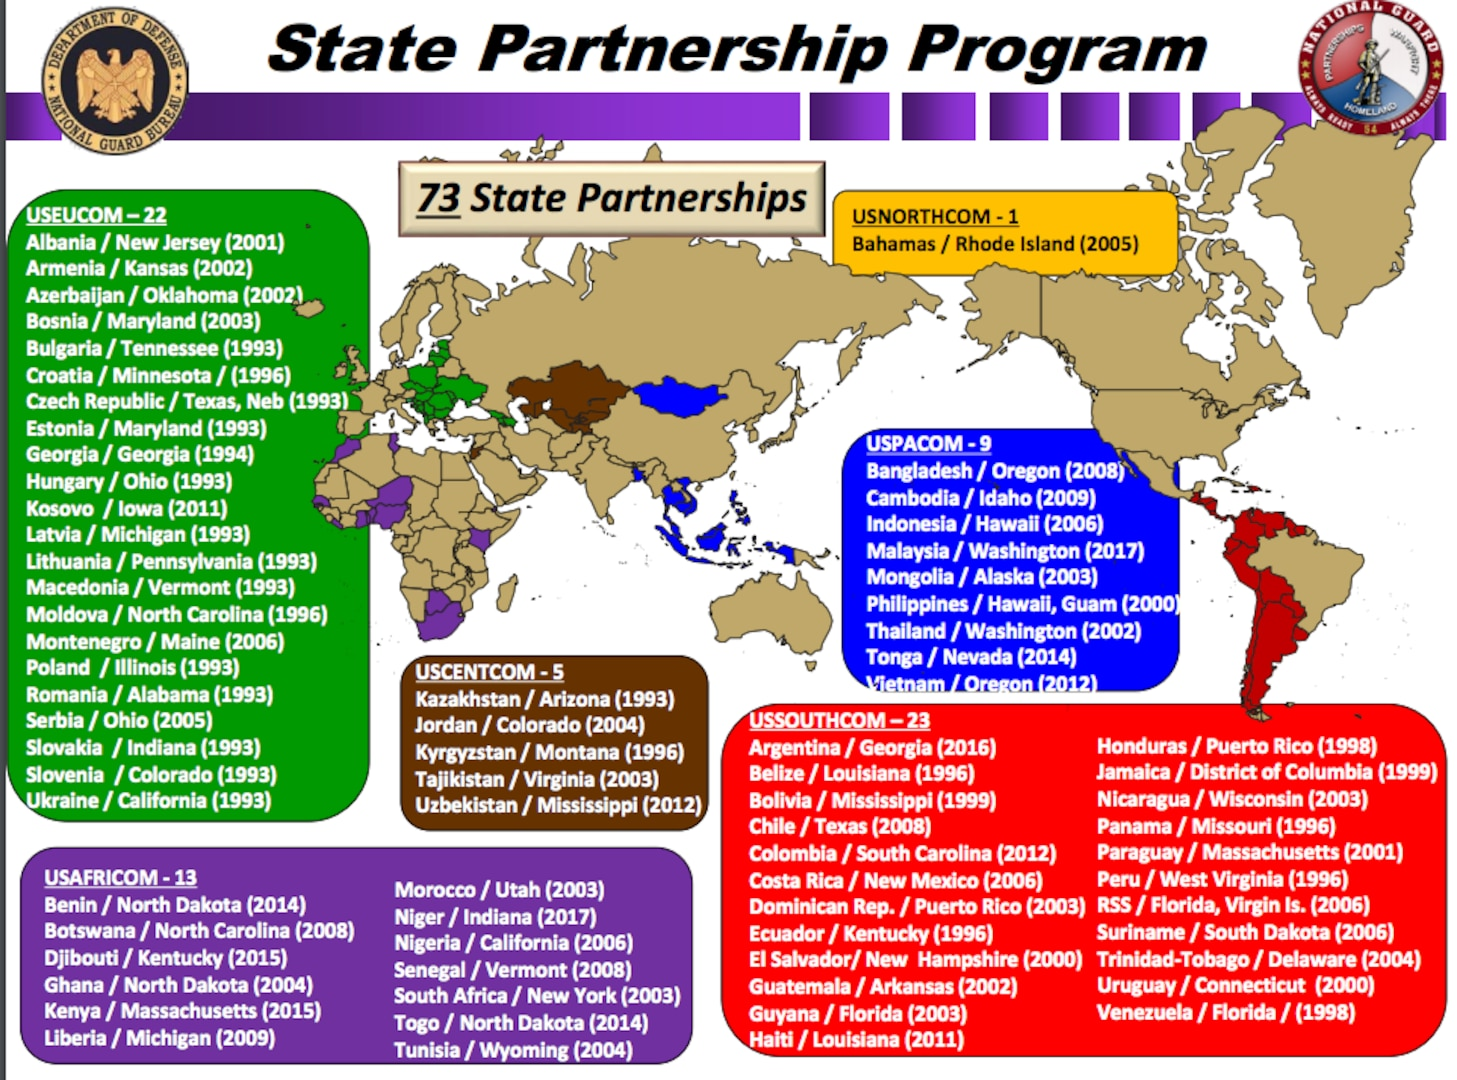 The West Virginia National Guard and Qatar are the latest partners in the State Partnership Program.